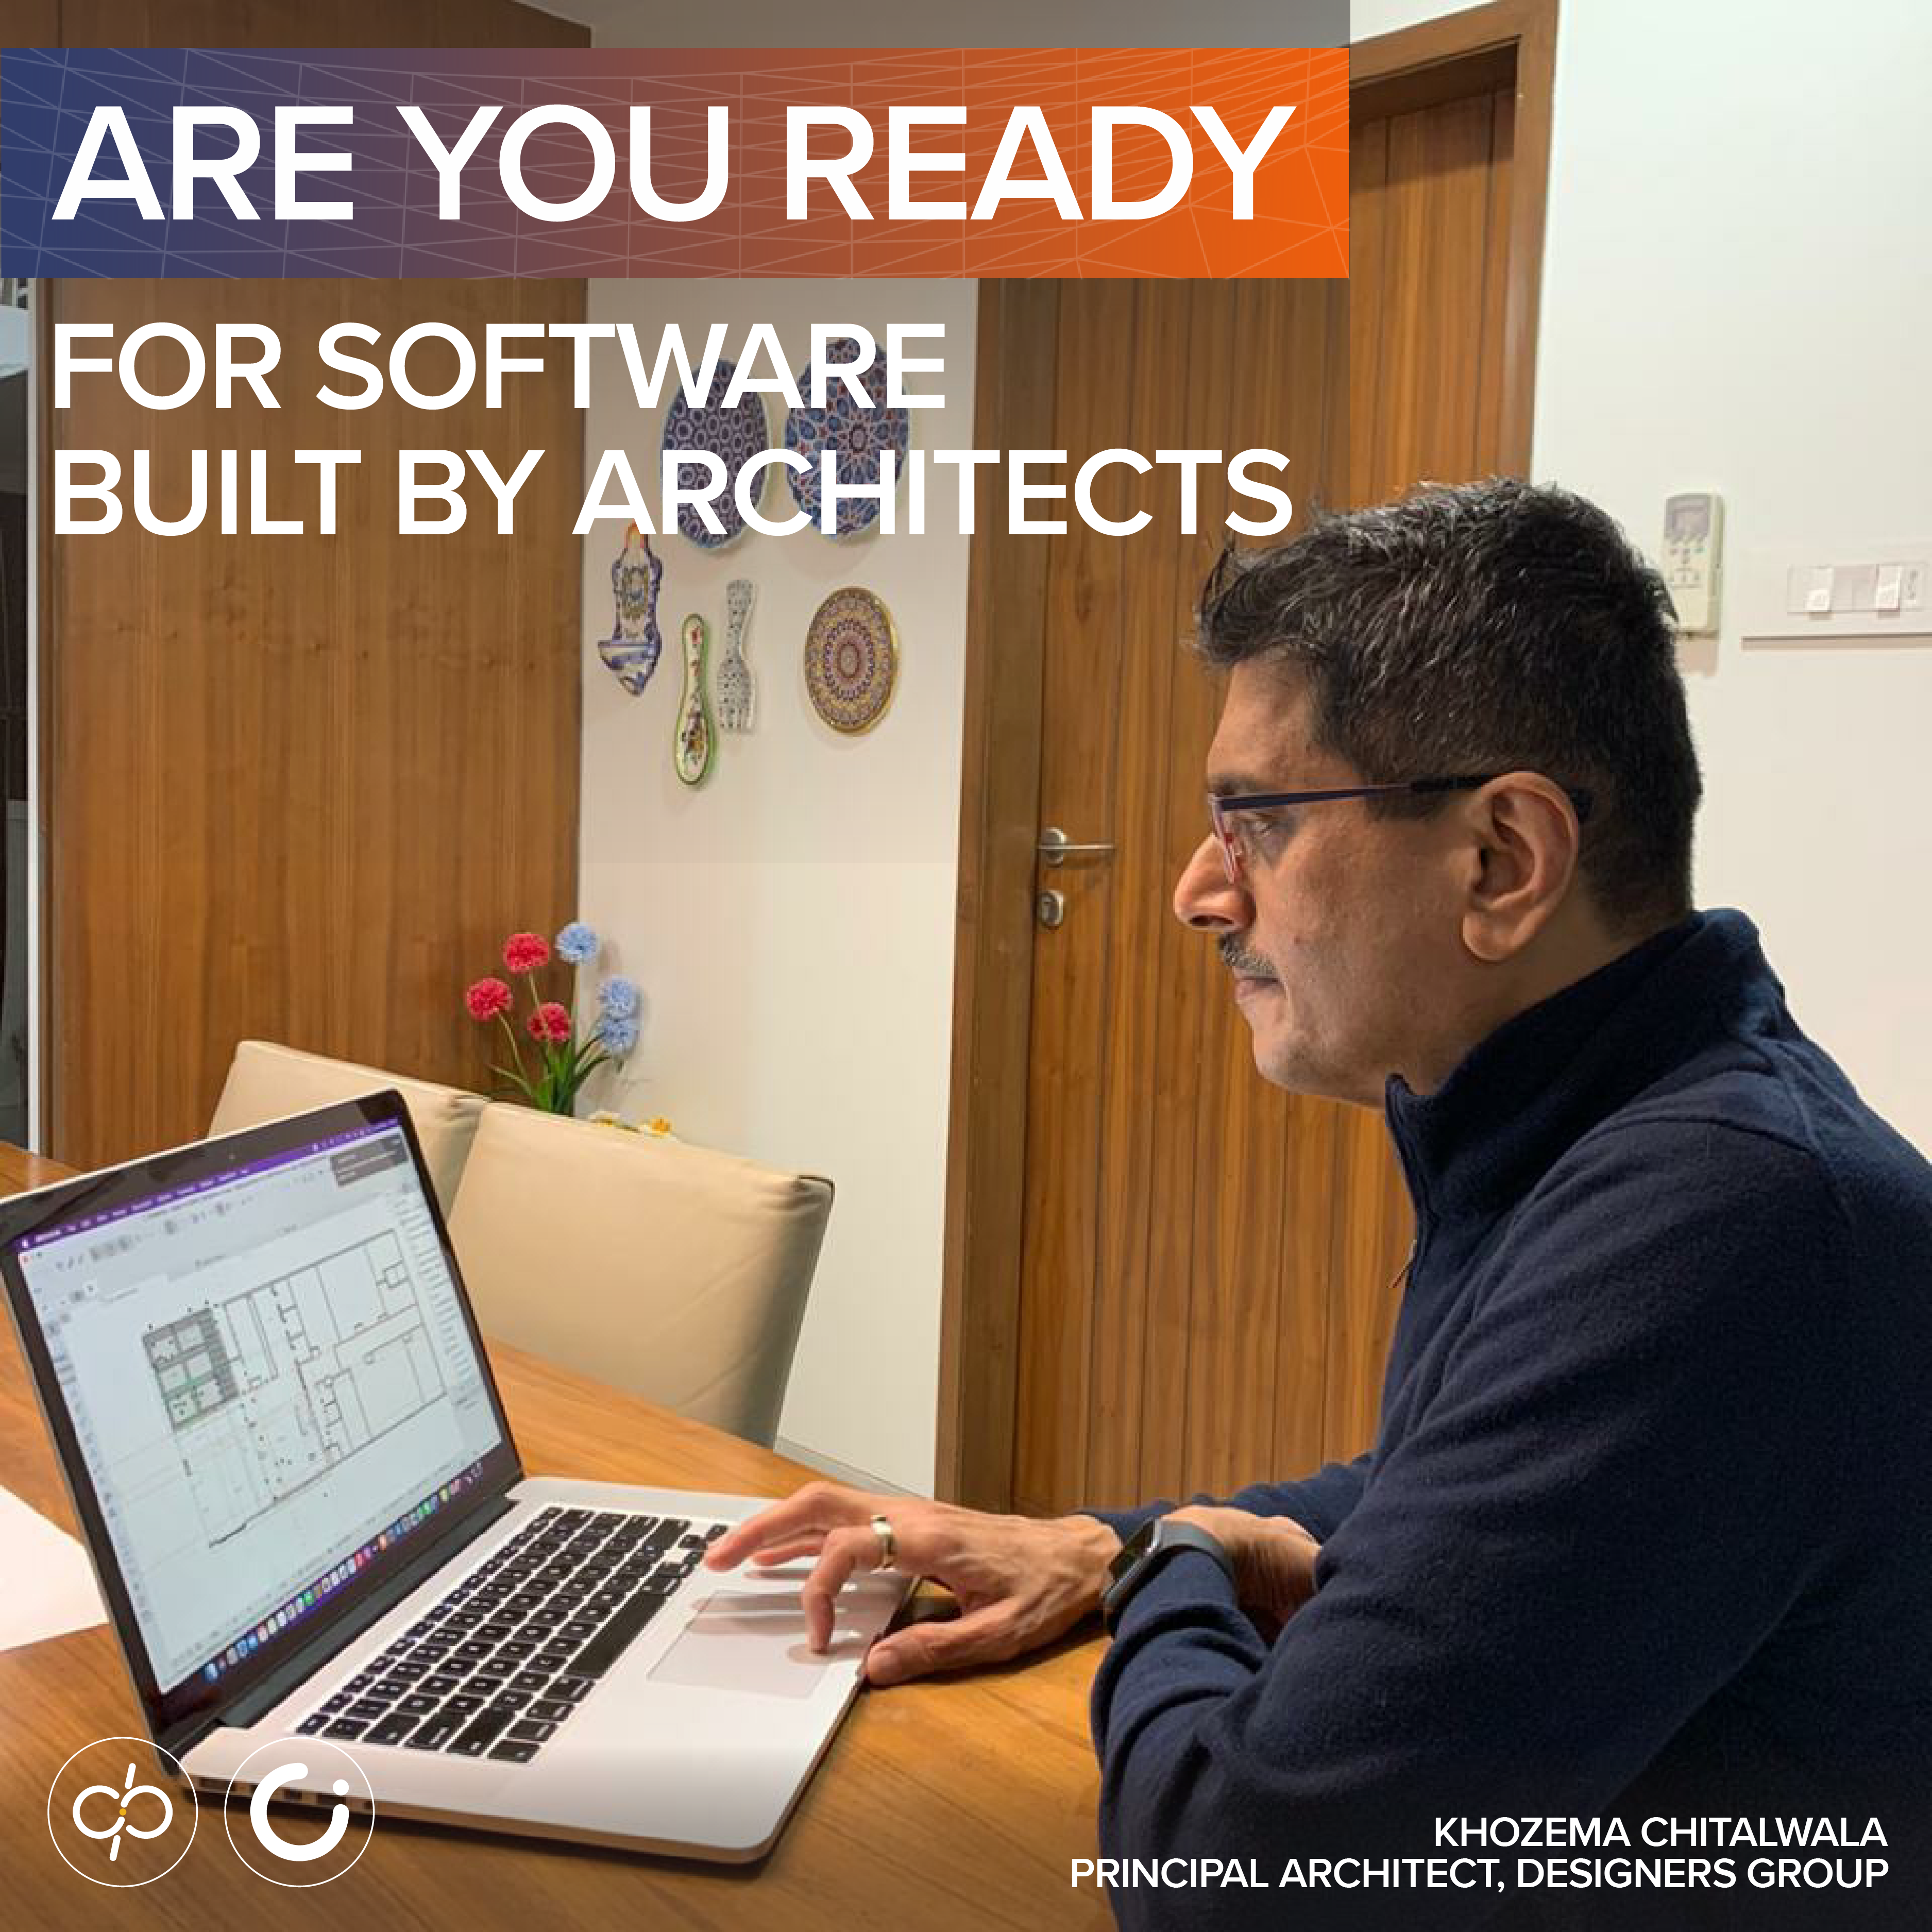 Are you Ready Khozema Chitalwala For Software built by Architects 2